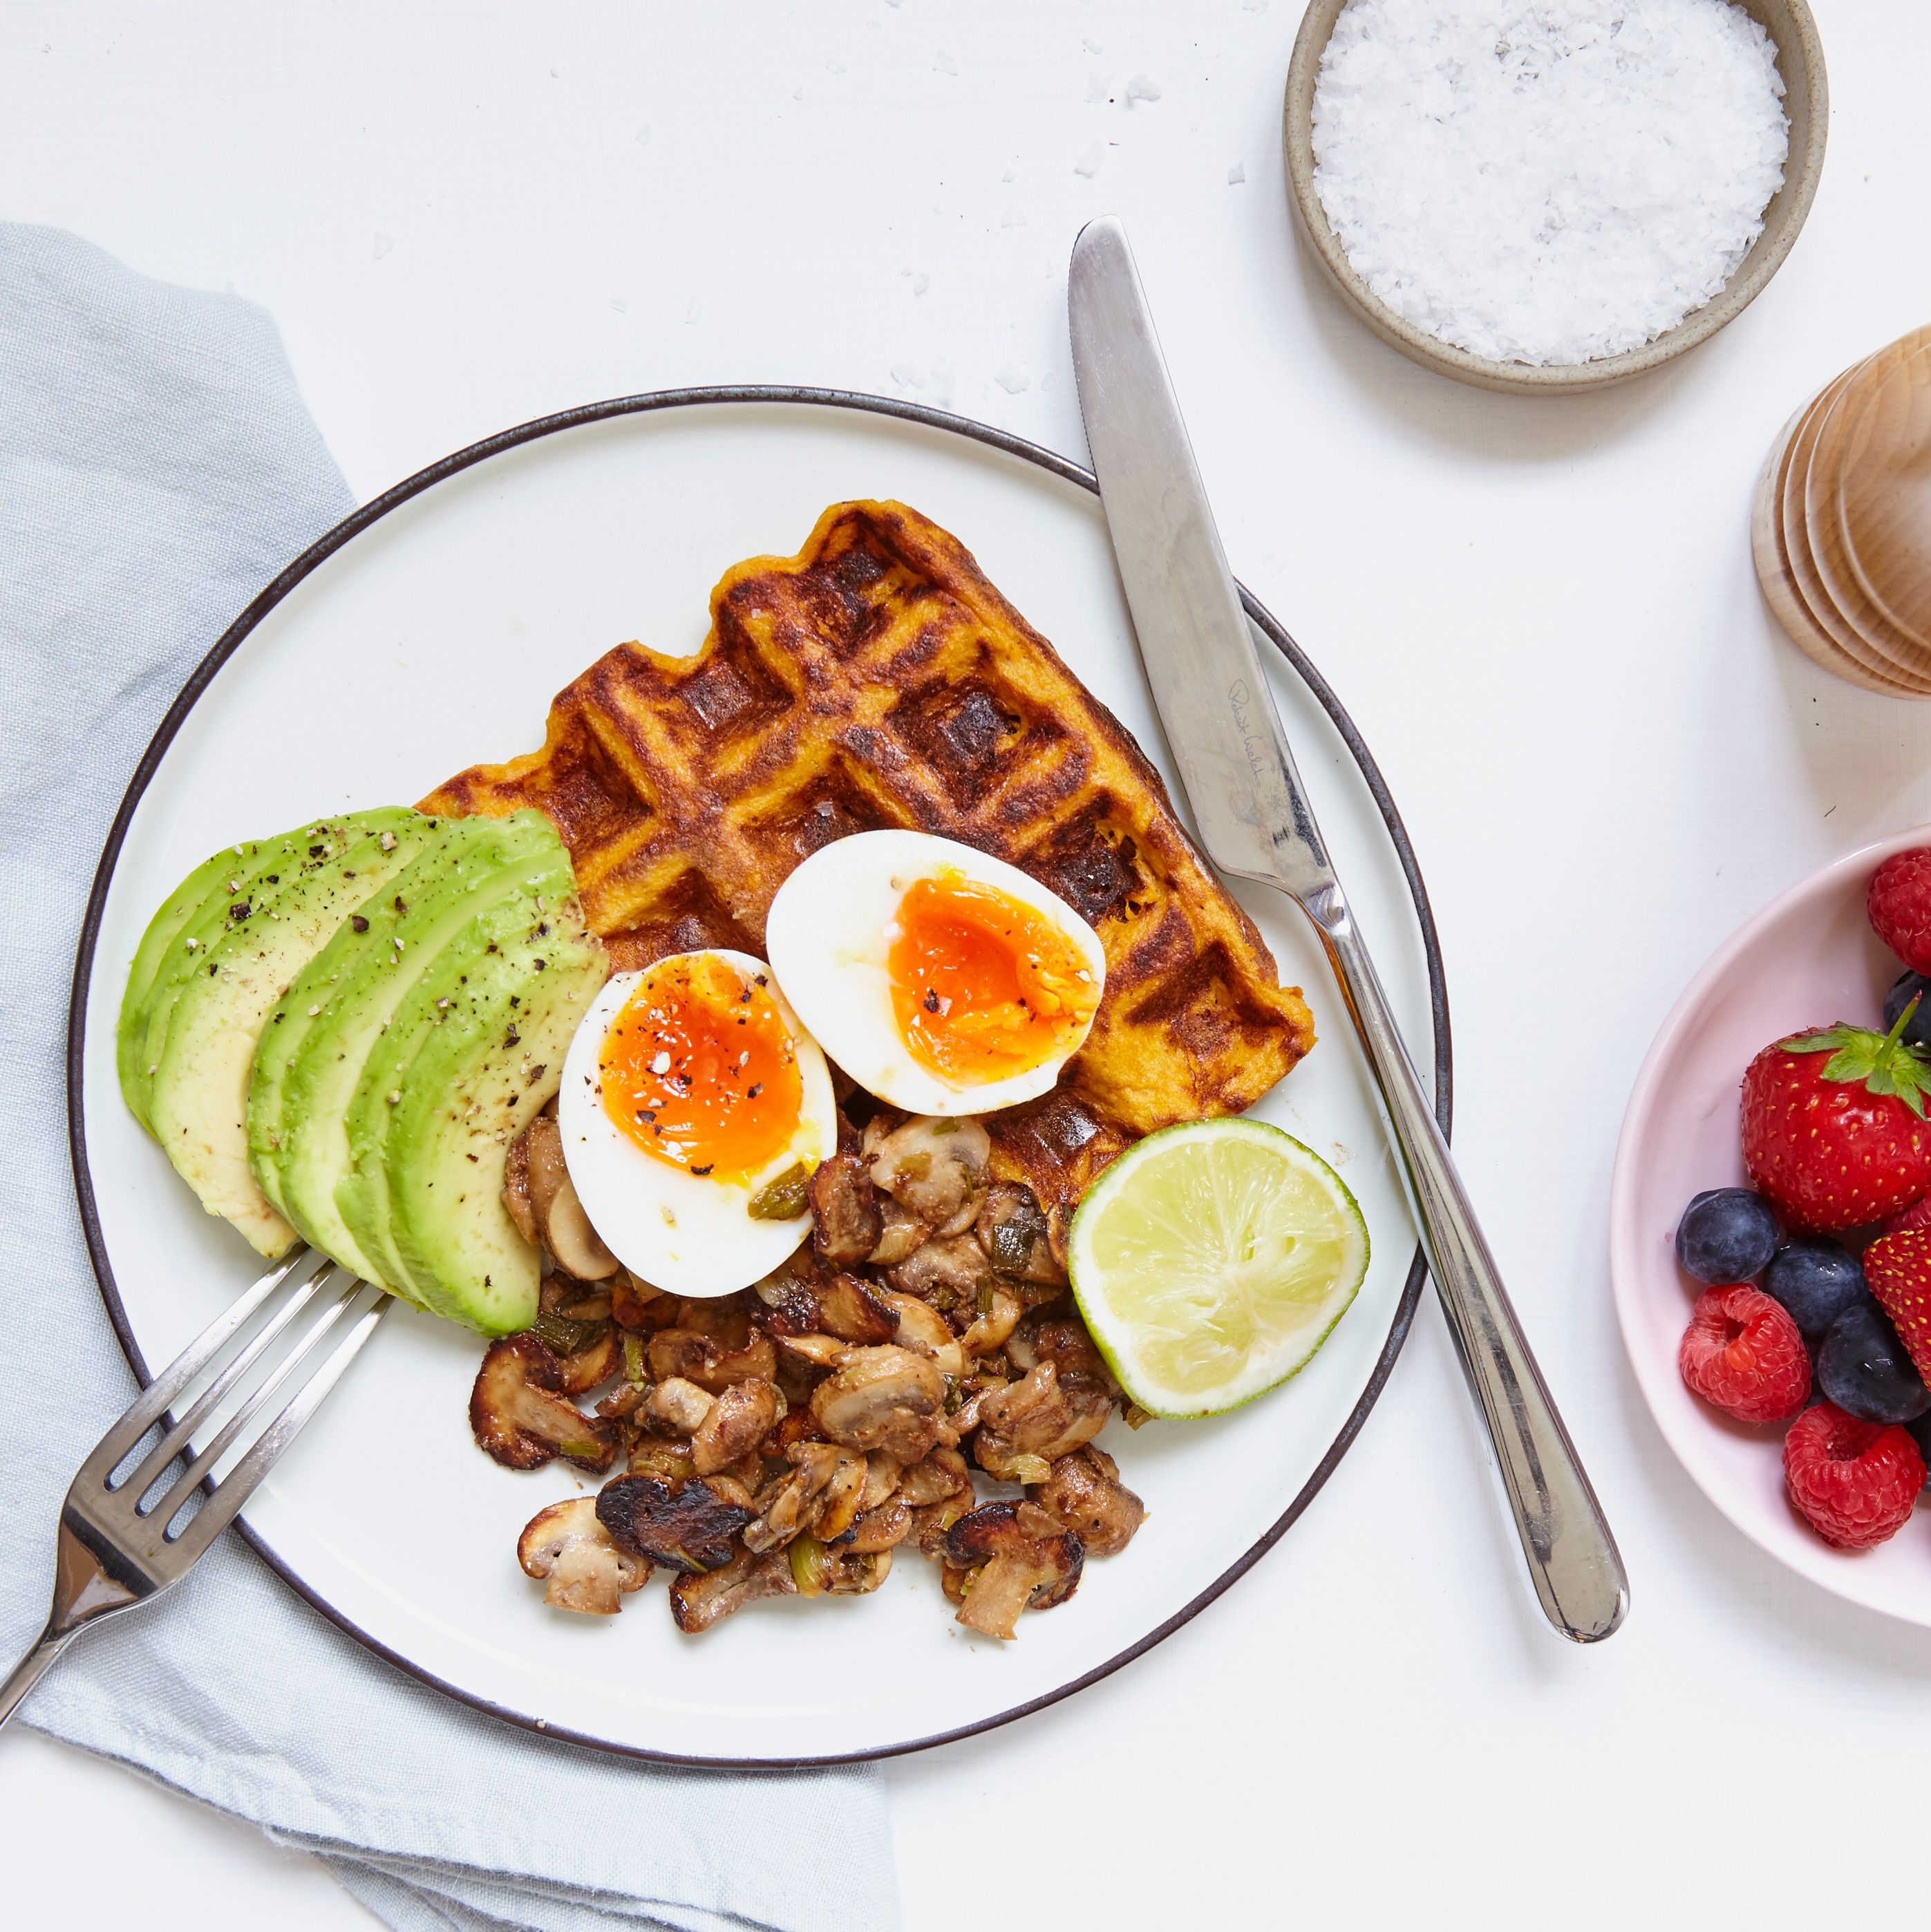 These delicious & nutritious savoury waffles are served with miso mushrooms, avocado and boiled eggs. Packed full of omega 3, protein and everything GOOD. Made exclusively by Madeleine Shaw.